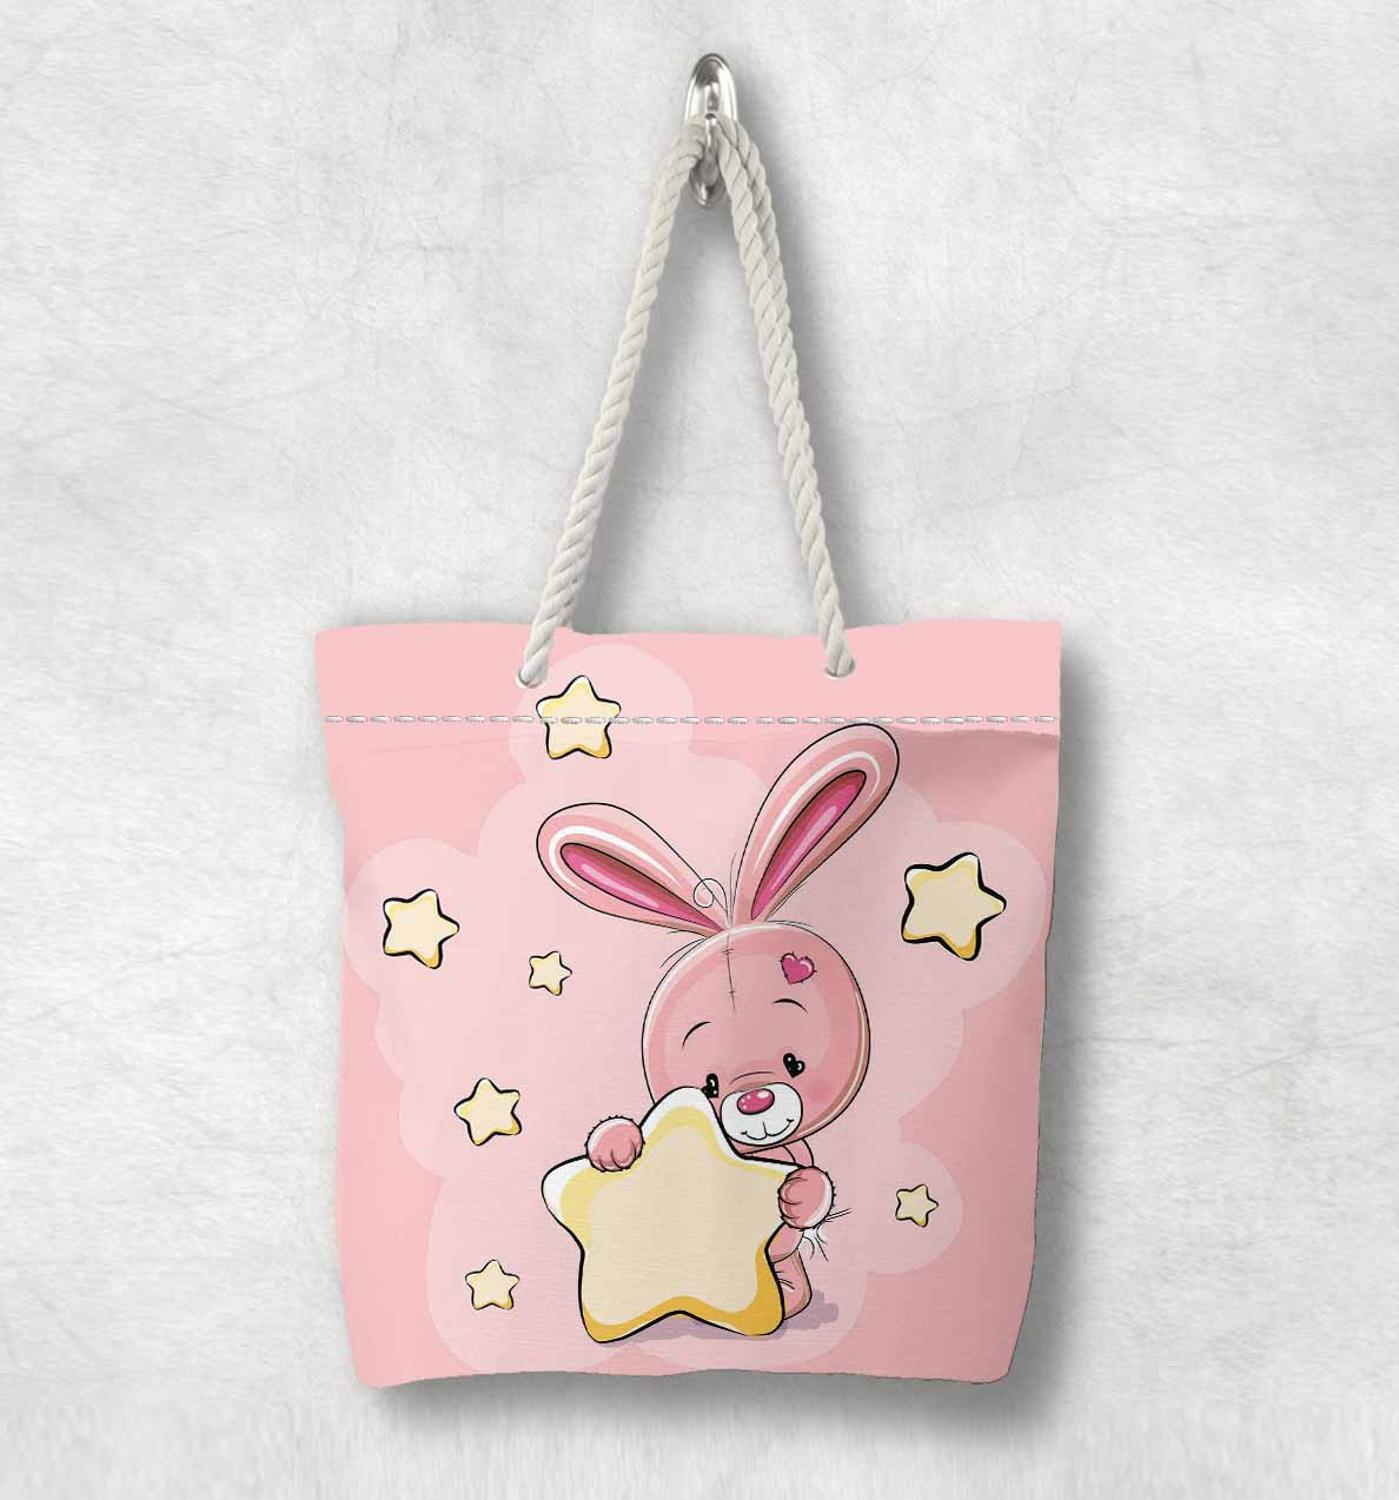 Else Pink Rabbit Yellow Stars New Fashion White Rope Handle Canvas Bag  Cartoon Print Zippered Tote Bag Shoulder Bag